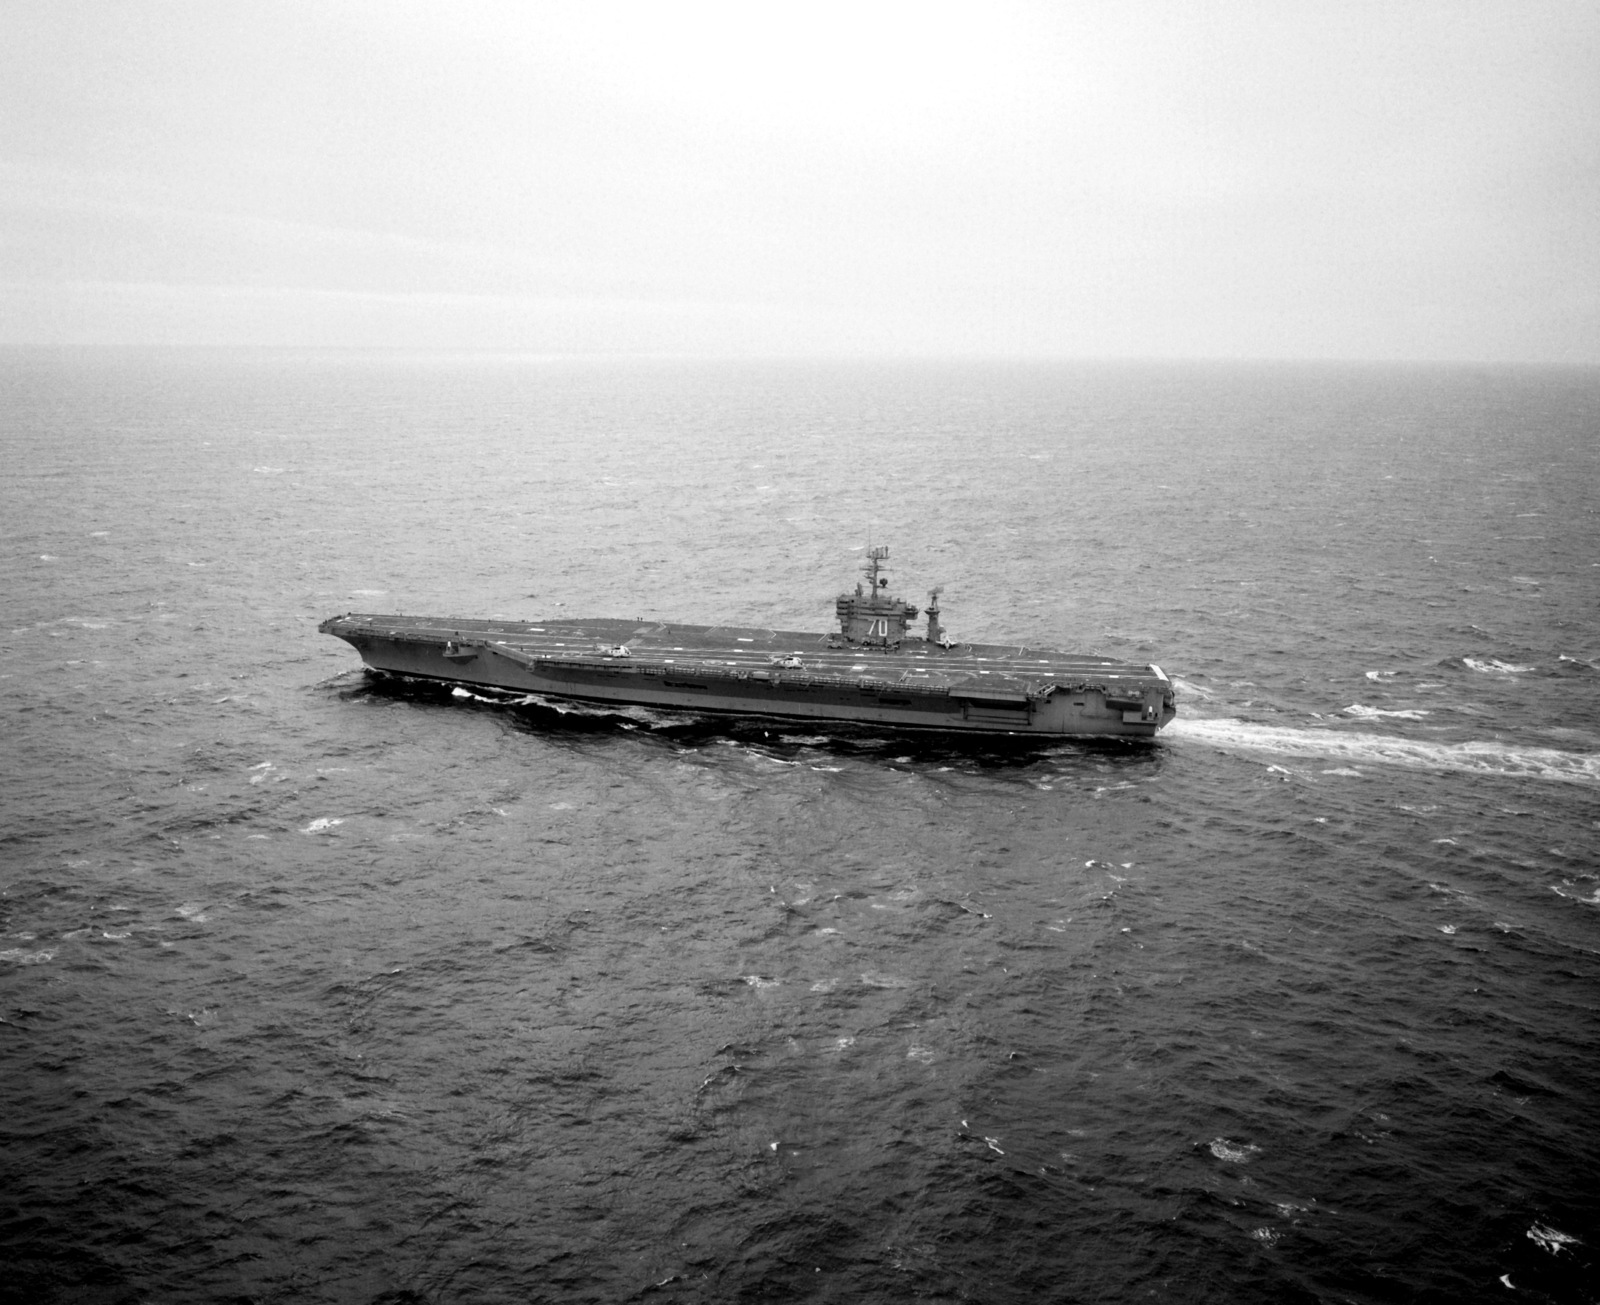 An aerial port beam view of the nuclear-powered aircraft carrier USS CARL VINSON (CVN-70) underway